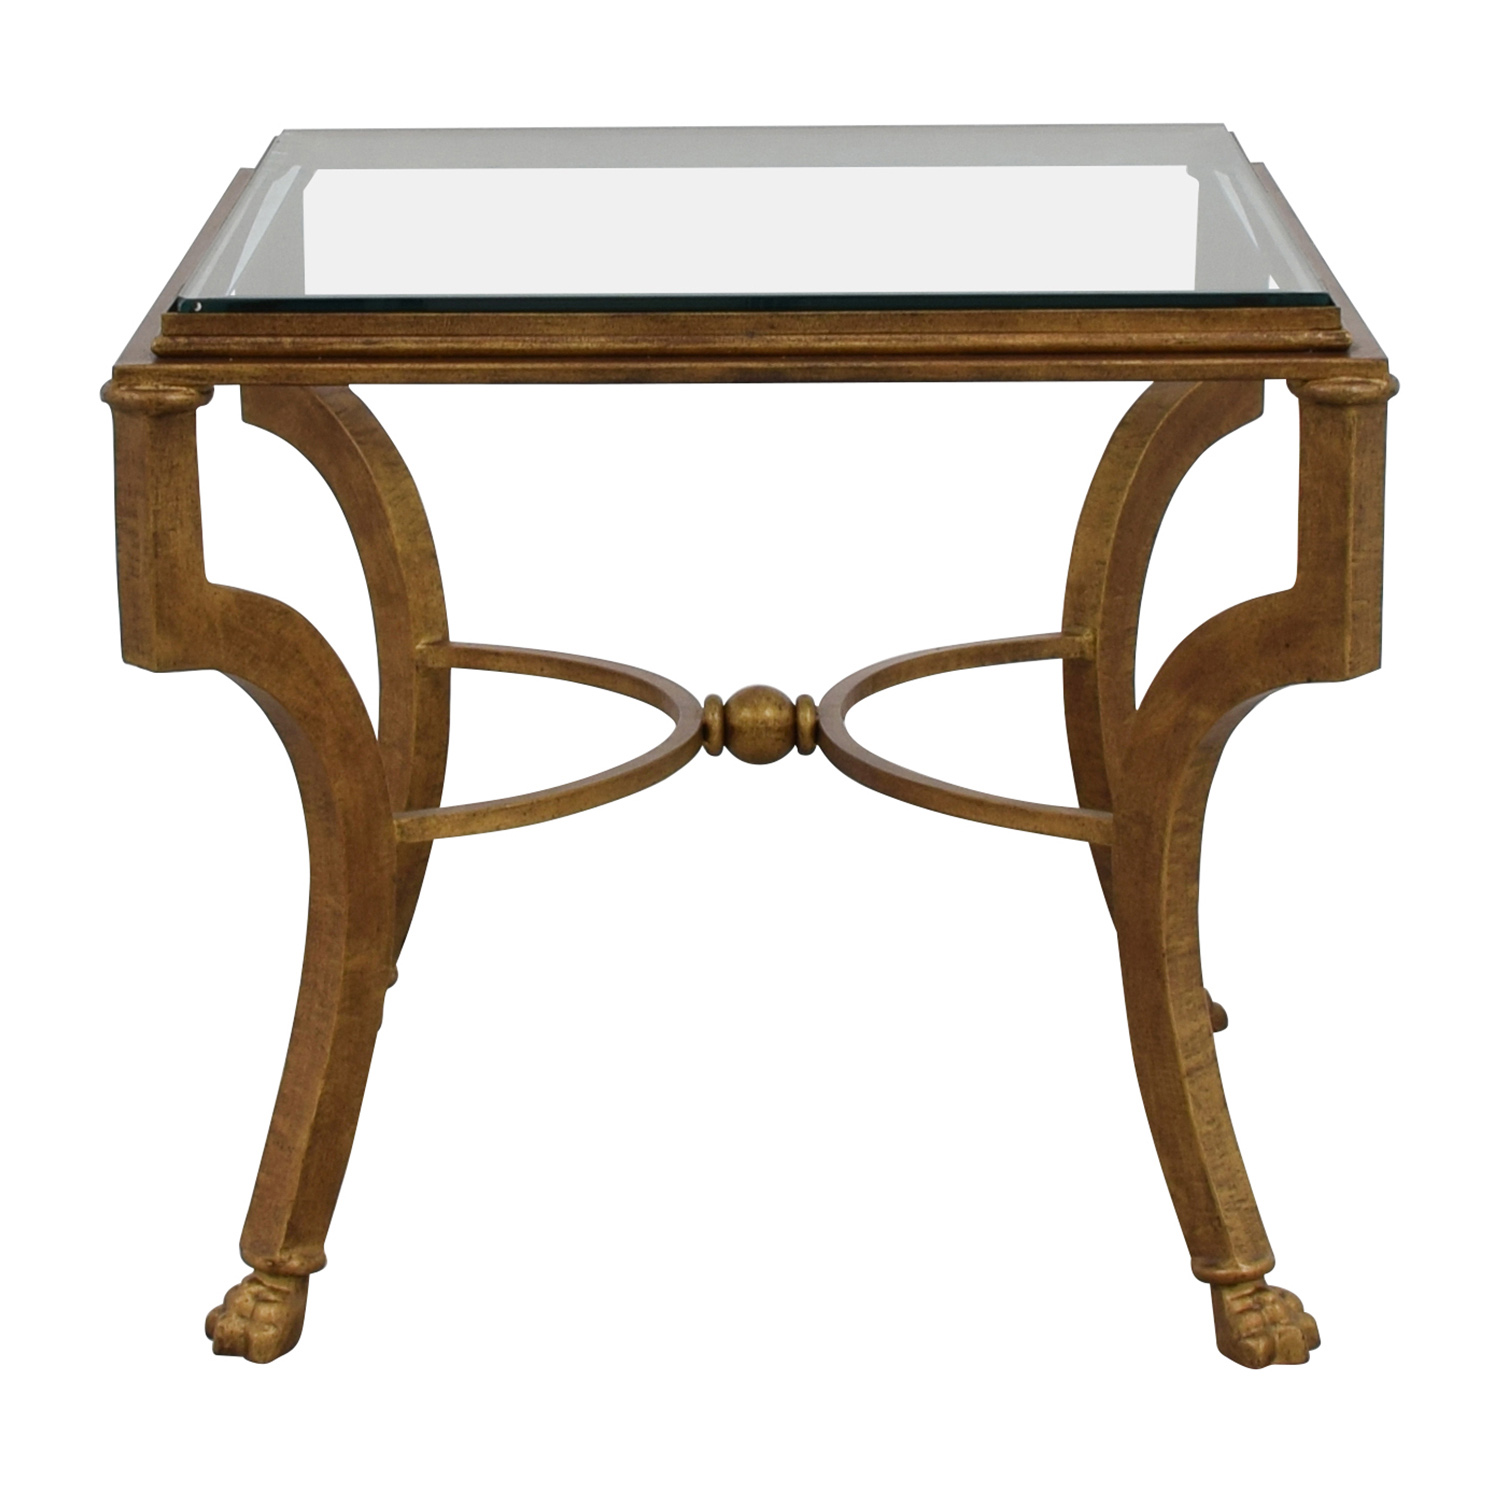 off square antique gold side table with glass top tables end log slice furniture mission style decorative for living room pottery barn leather coffee vintage small round marble